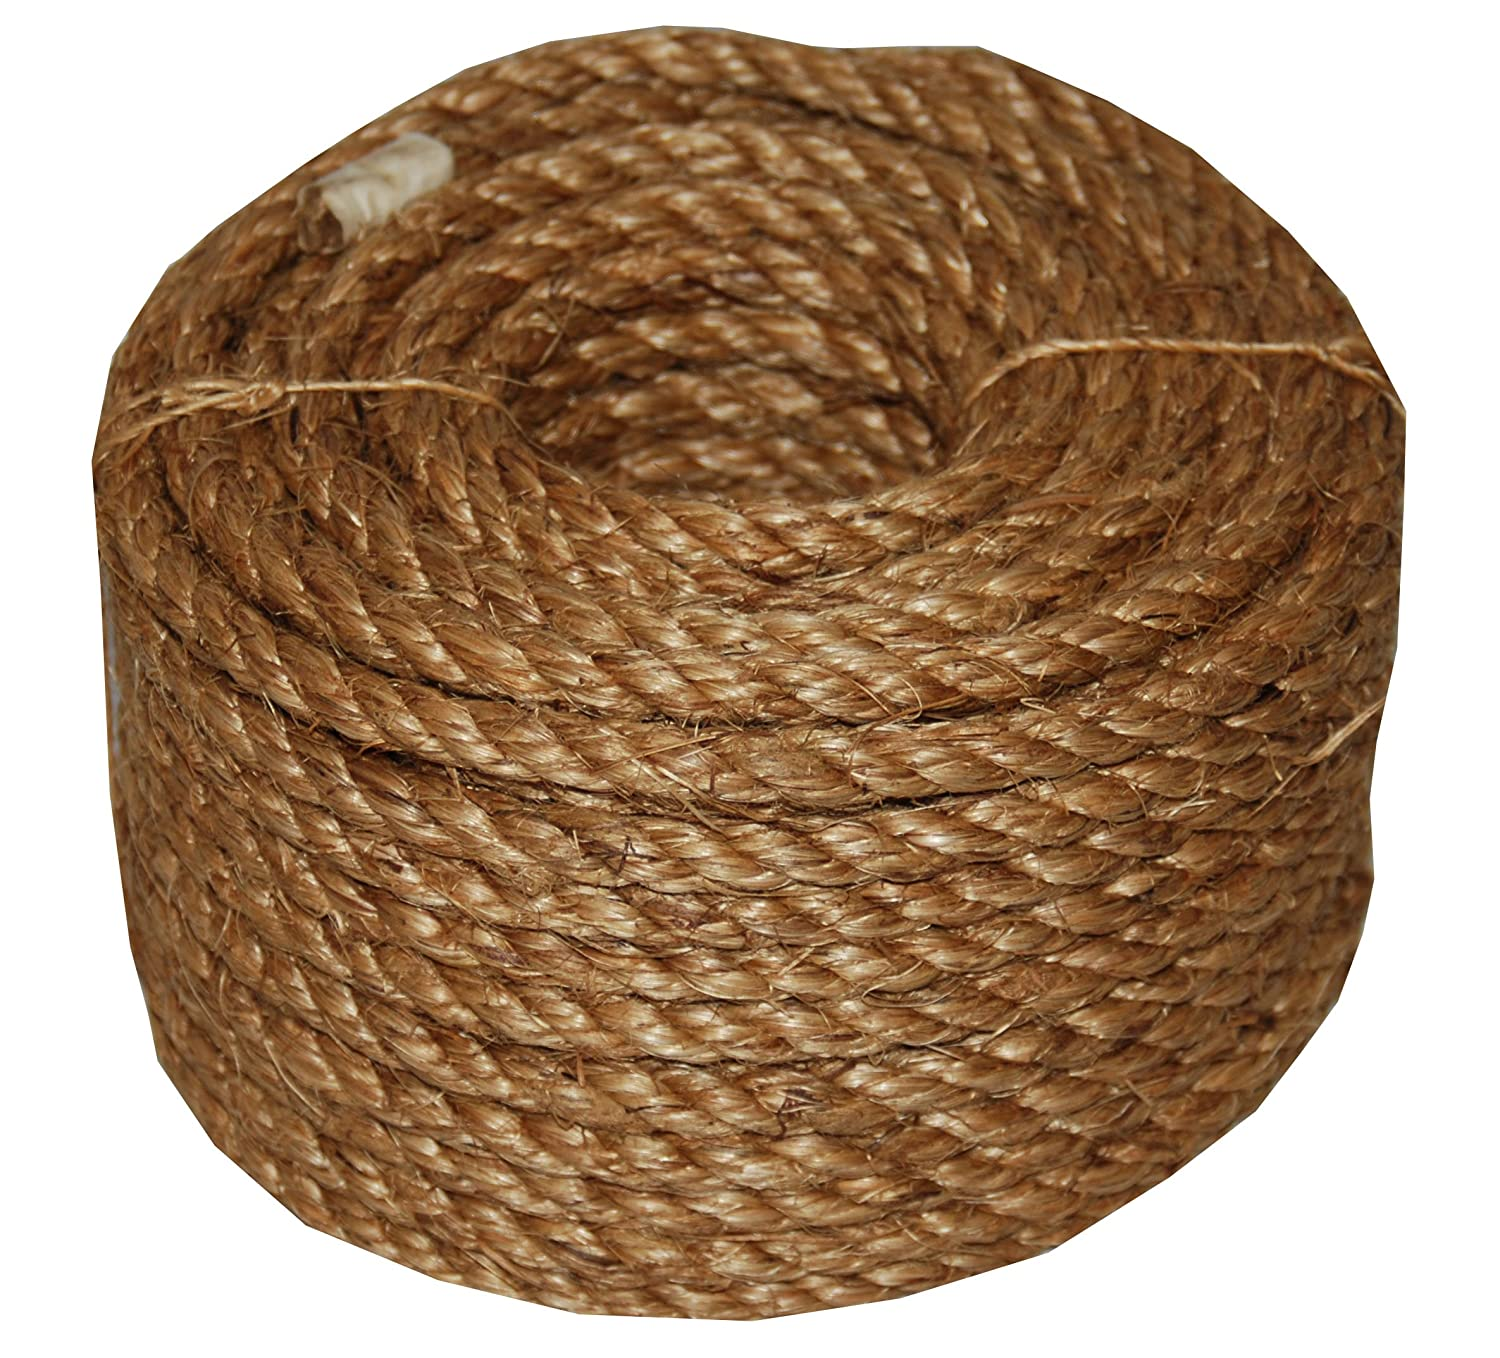 Evans Cordage Co. T.W Evans Cordage 26-066 3//4-Inch by 100-Feet 5 Star Manila Rope T.W